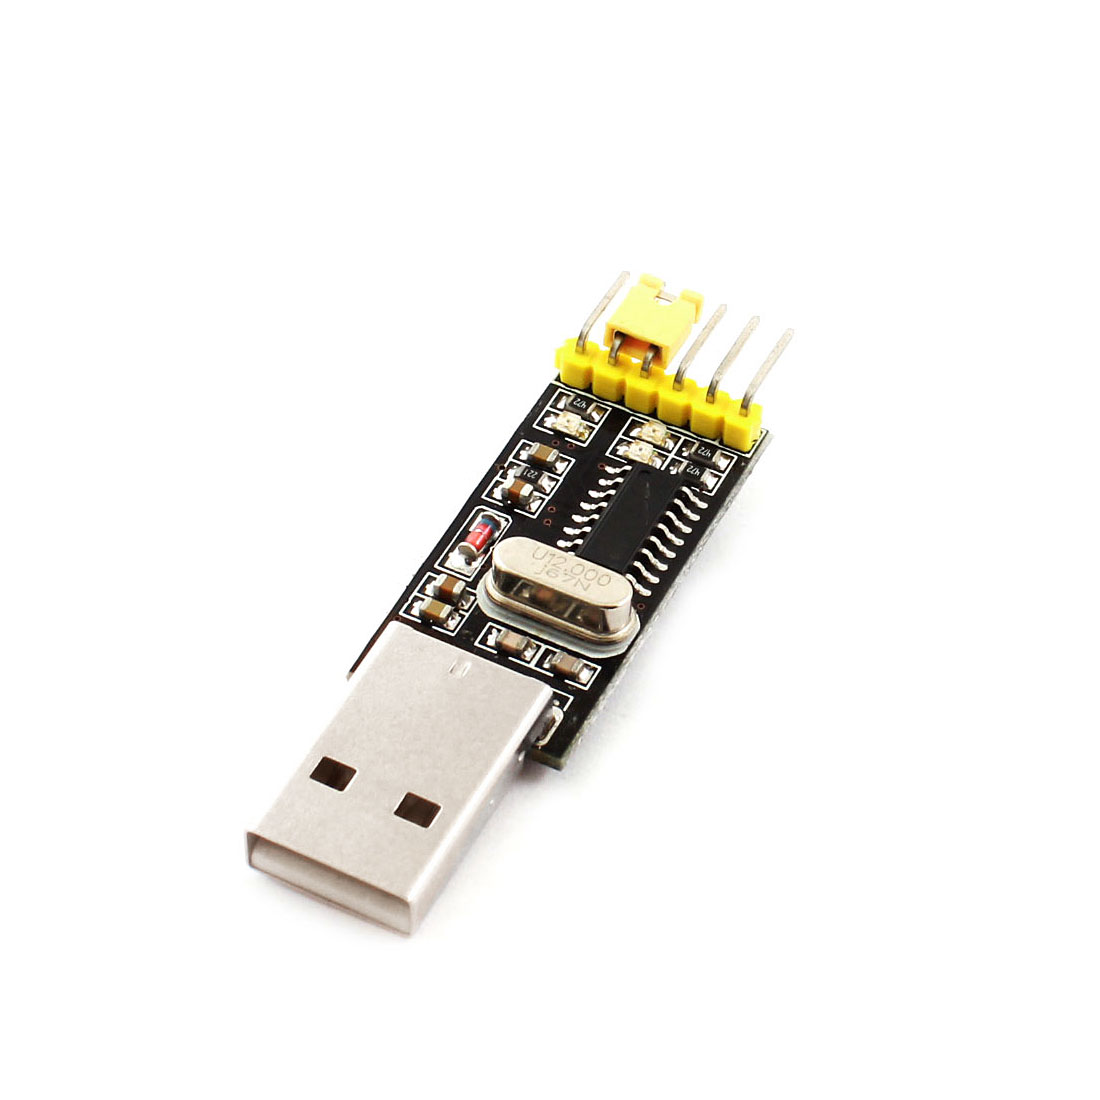 USB 2.0 to TTL UART 6Pin Download Module Serial Adapter Converter CH340 Chip for PCB Board